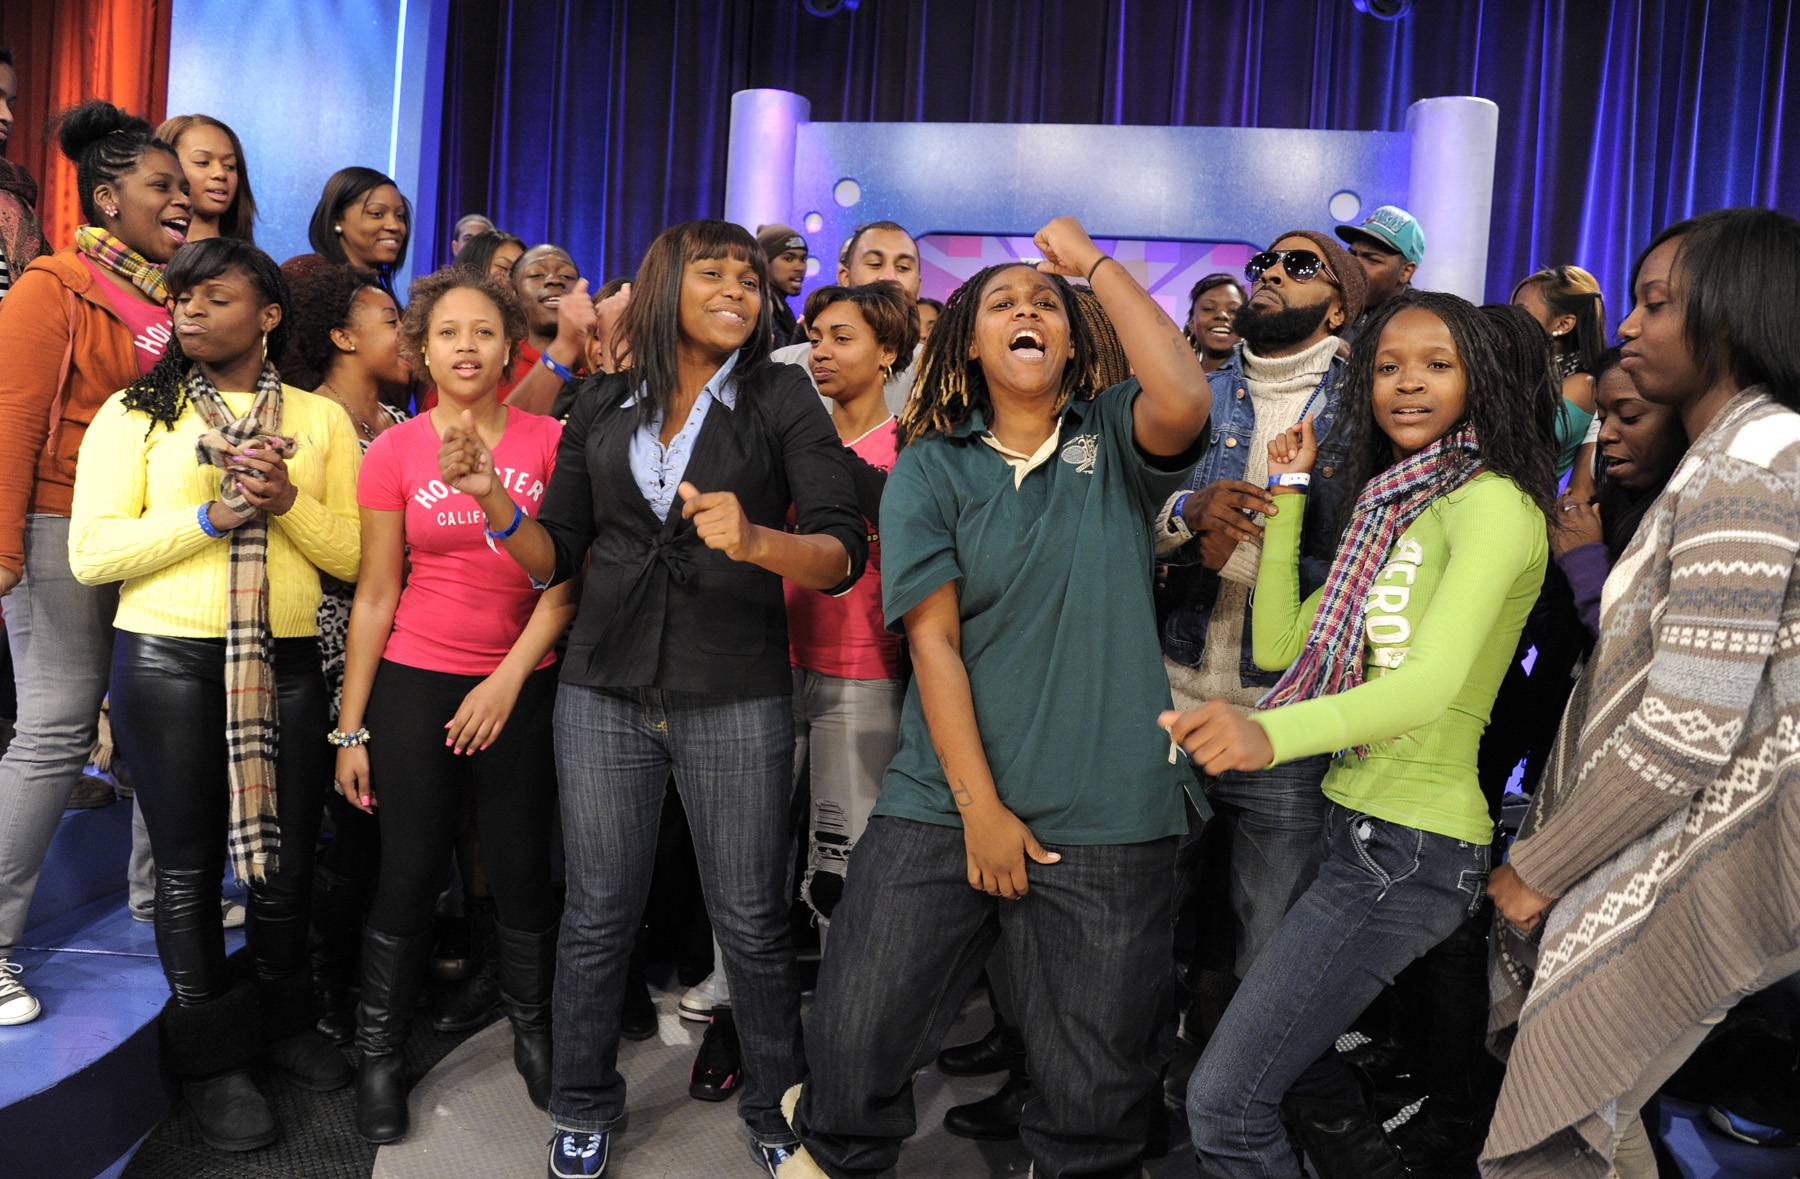 Hey Now - The Livest Audience at 106 & Park, January 3, 2012. (Photo: John Ricard / BET)